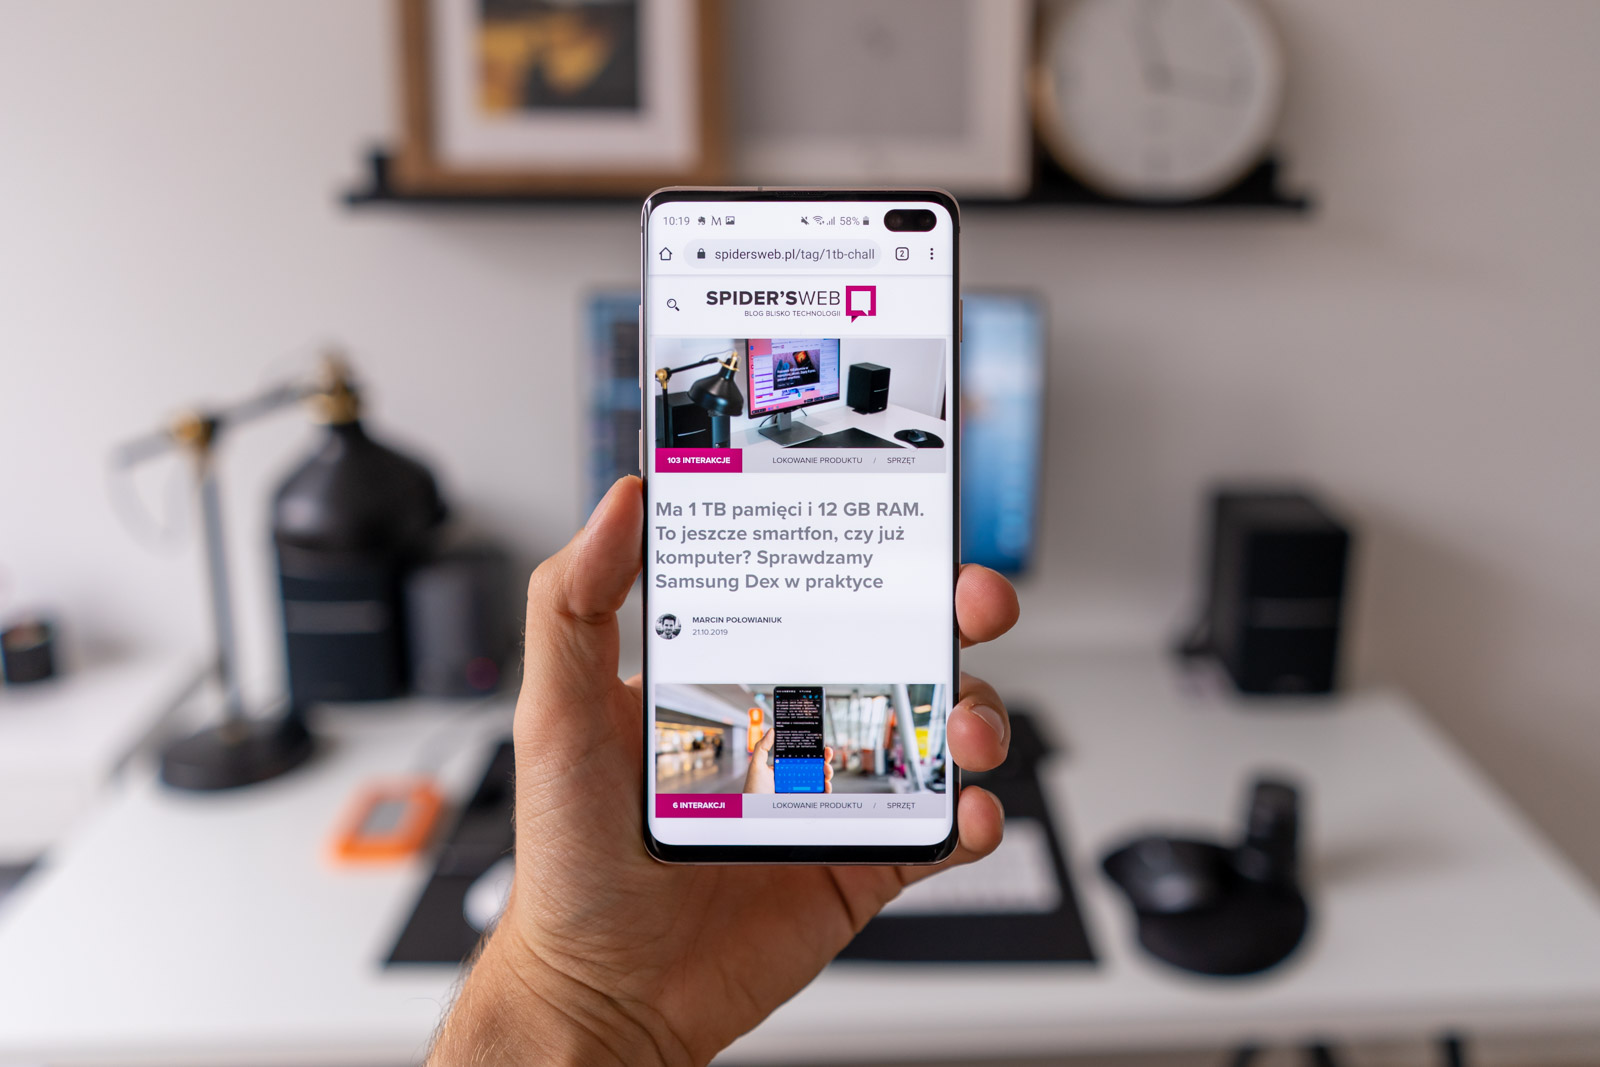 Smartphones from the Galaxy S10 family will get the update to Android 10 first